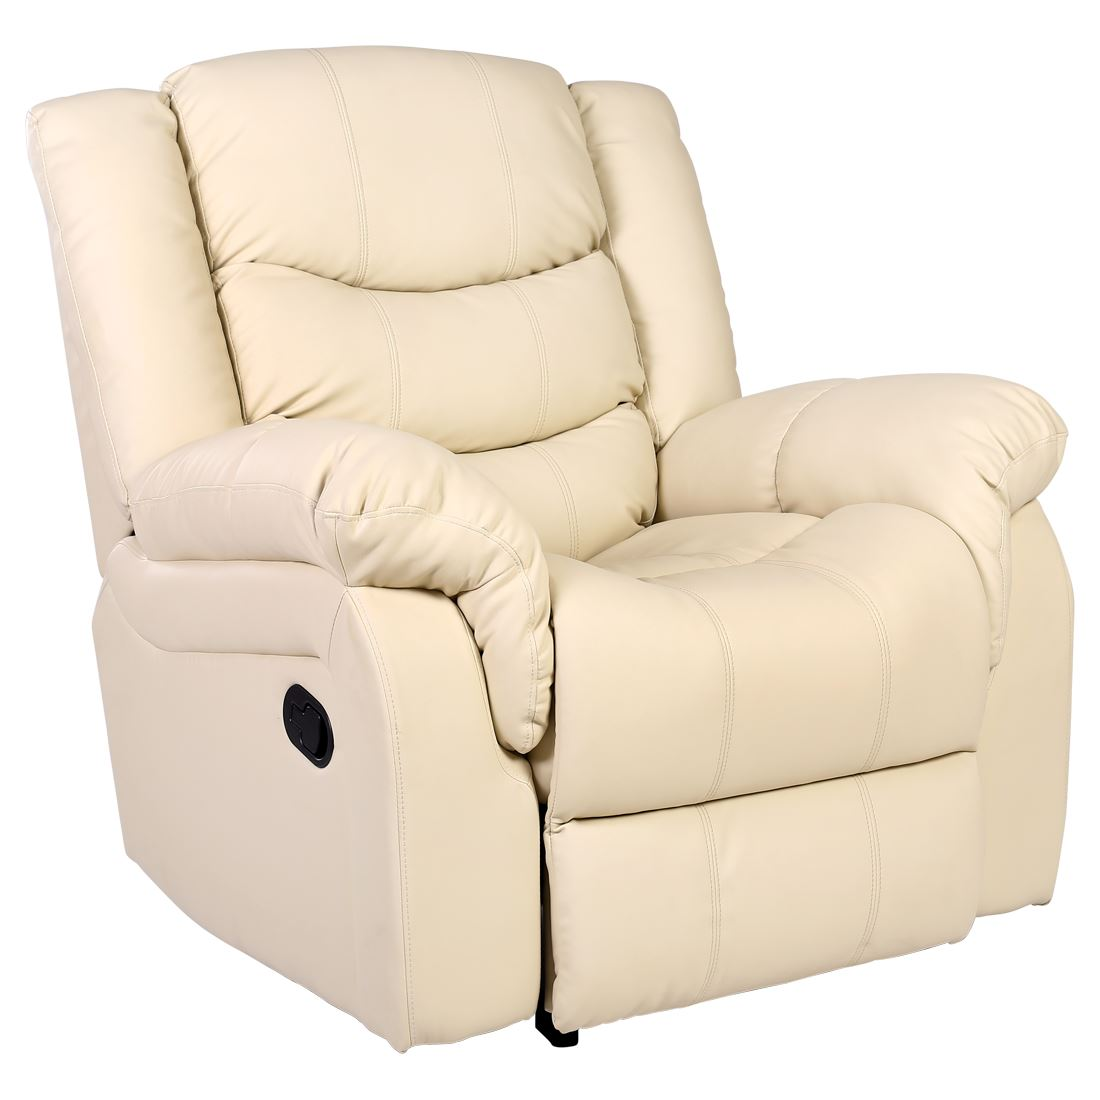 Item specifics  sc 1 st  eBay : ebay leather recliner - islam-shia.org